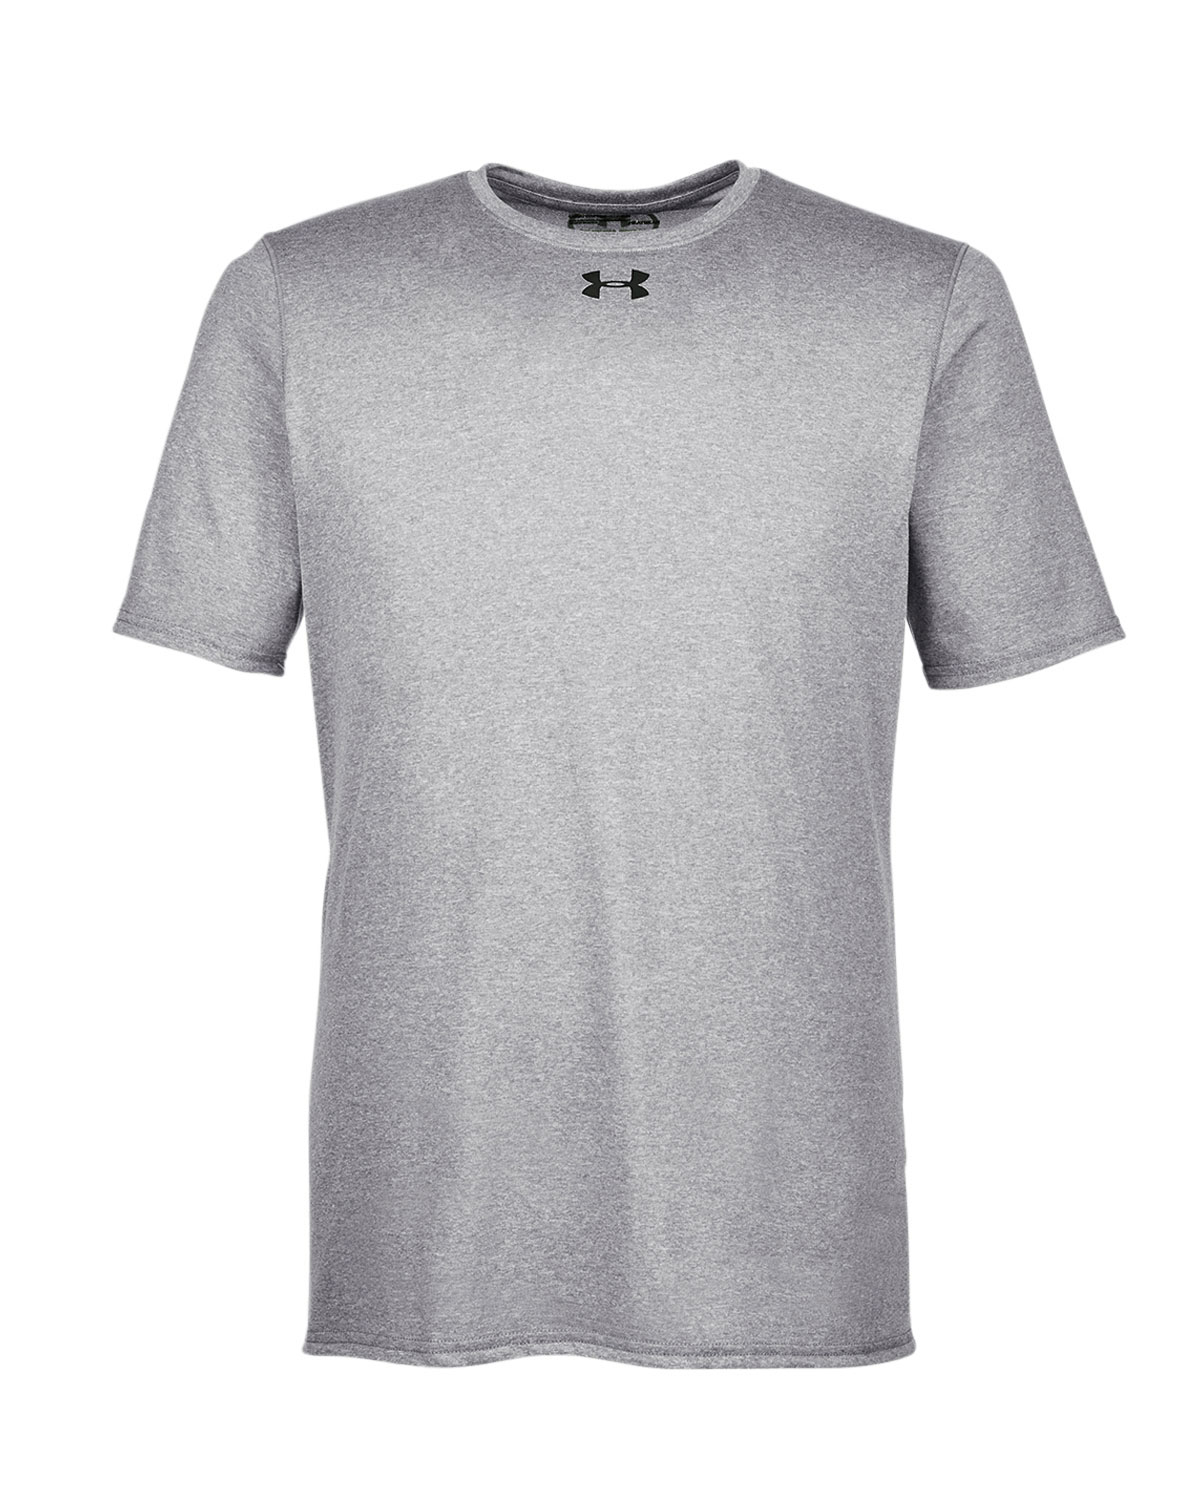 Under Armour Mens Locker T-Shirt 2.0